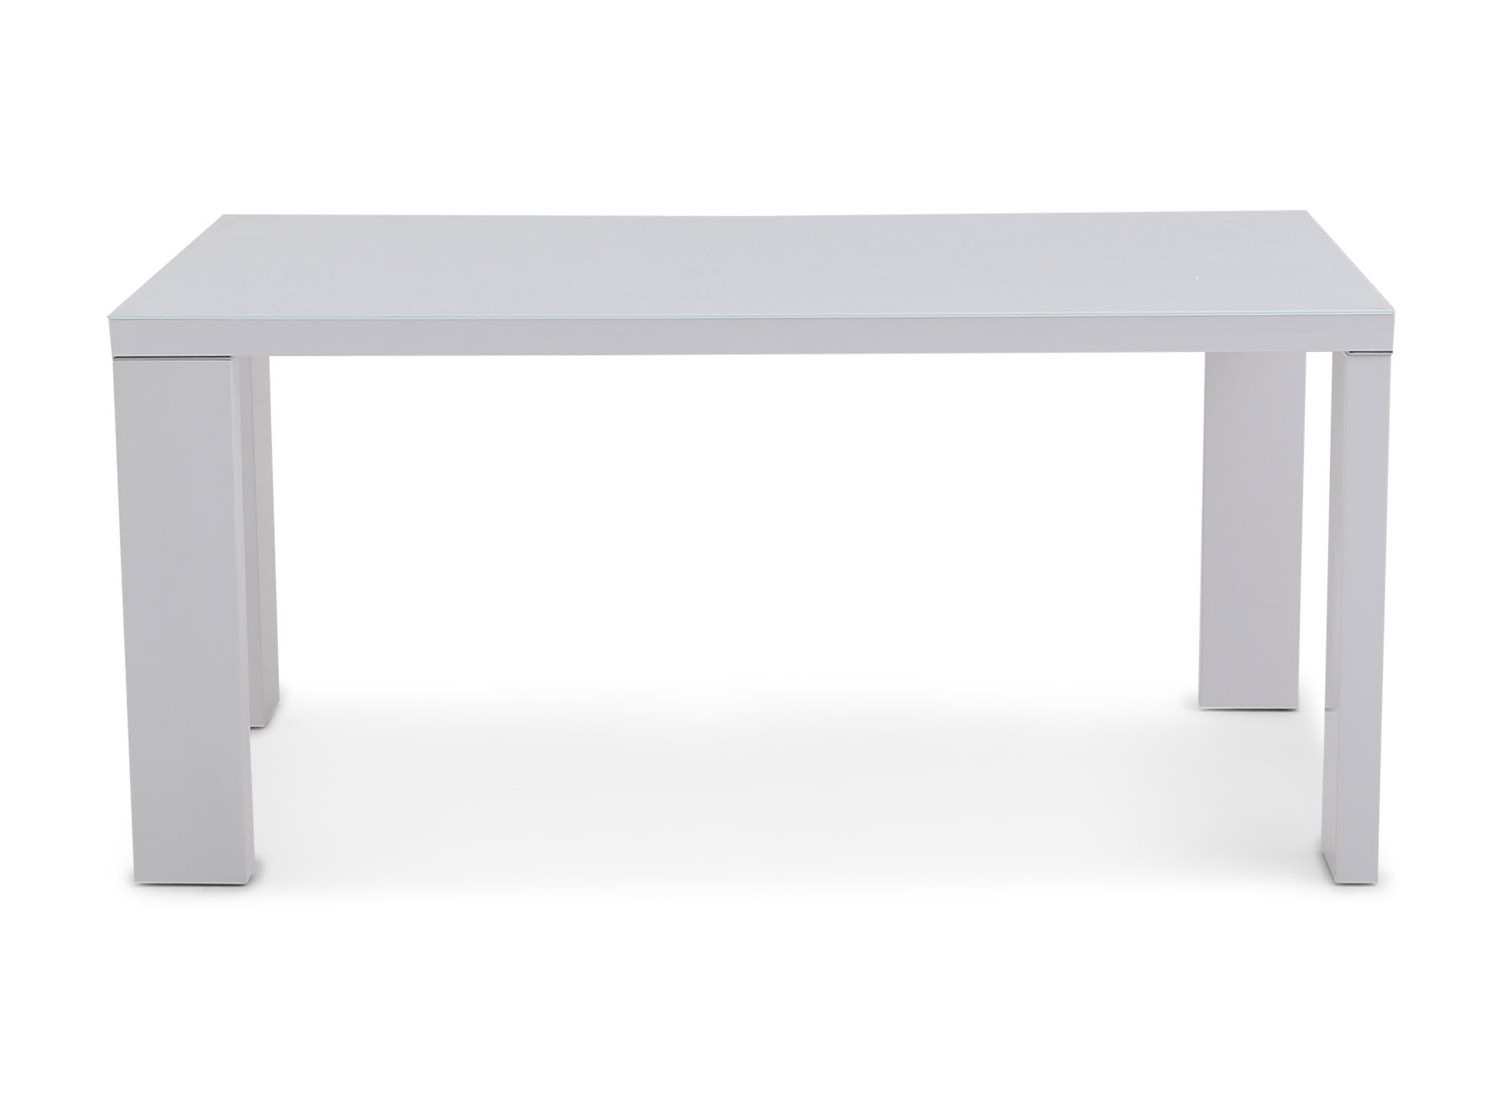 https://www.firstfurniture.co.uk/pub/media/catalog/product/f/a/fairmont_lucca_white_high_gloss_dining_table_7.jpg